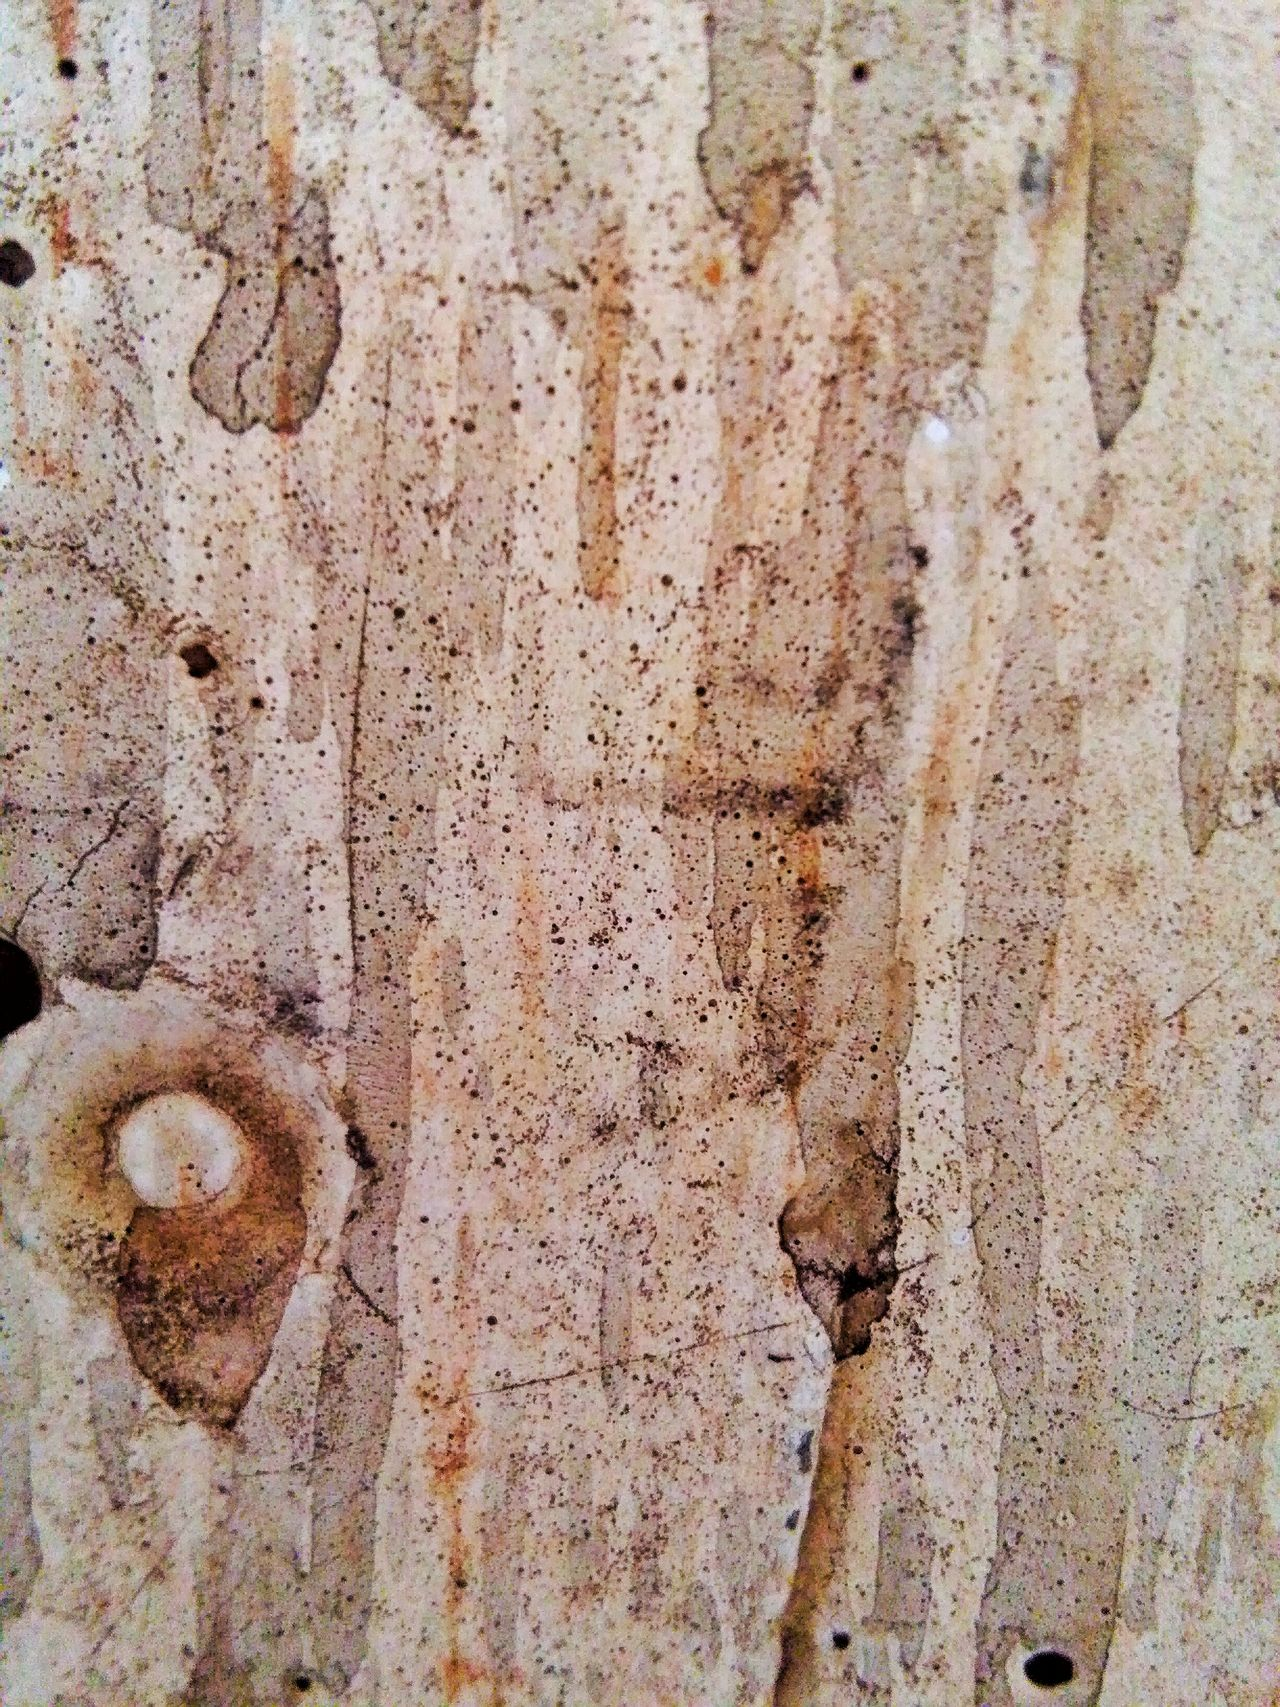 Texture Textures And Surfaces Rusty Wall Dirty Dirty Wall Schmutzig Wand Mauer Braun Braunton Dreck Dreckig Wand Textur Mapping Skin Fleckig Flecken Beton Concrete